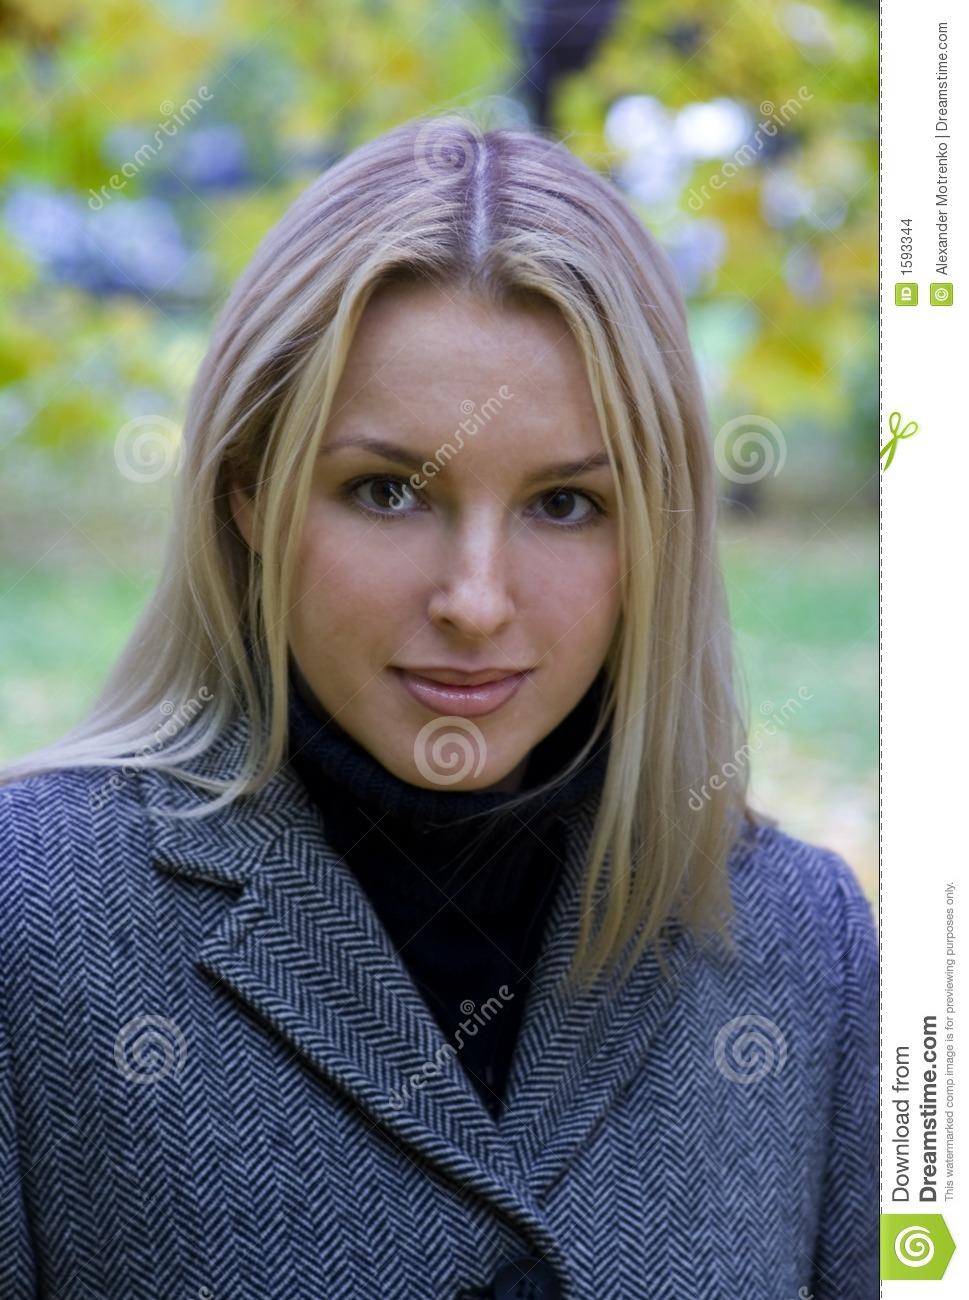 headshot of a pretty girl stock images   image 1593344